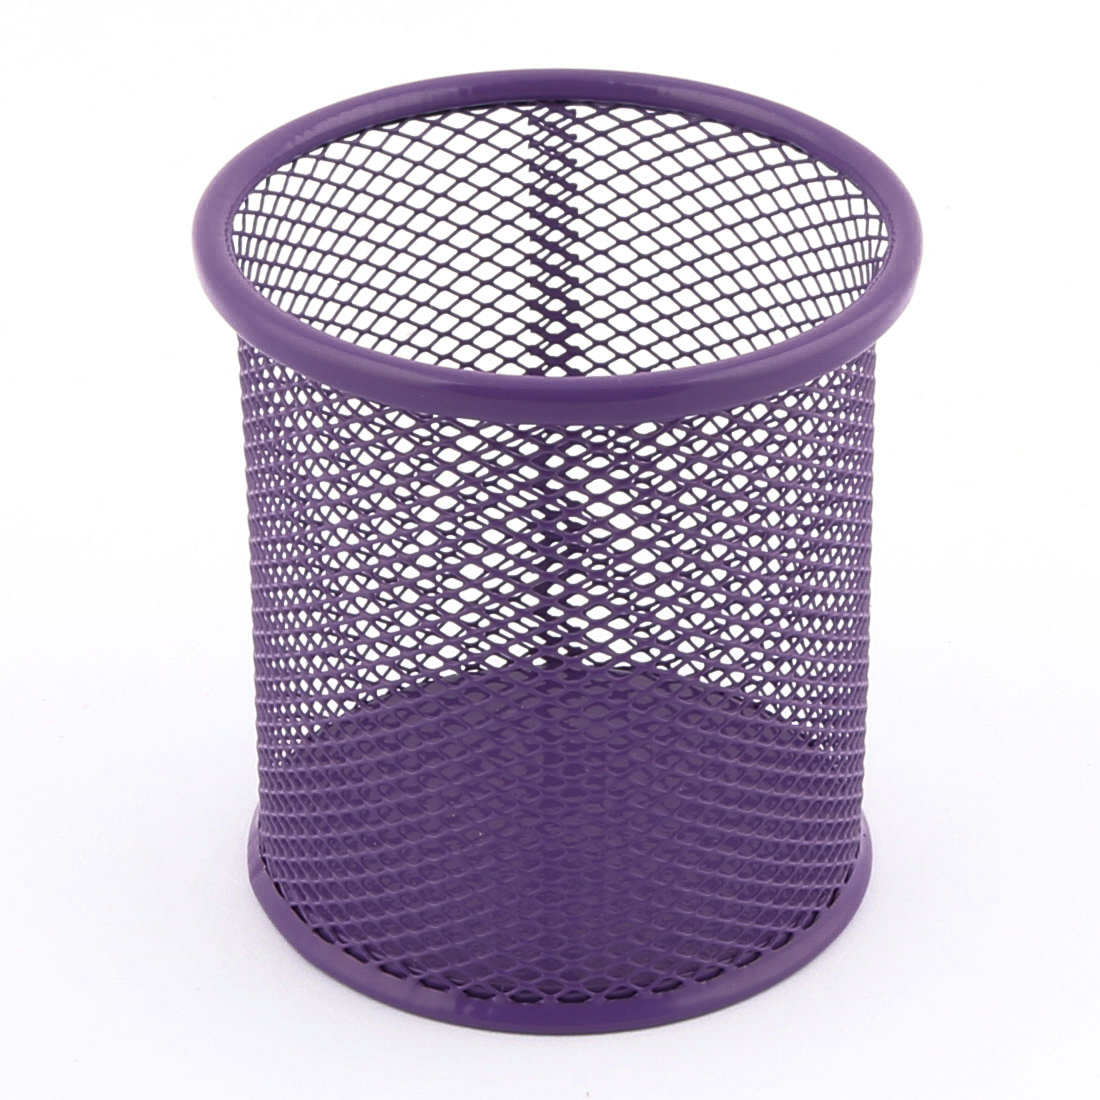 Metal Cylindrical Shaped Meshy Pen Pencil Holder Organizer 9.5cm High Purple